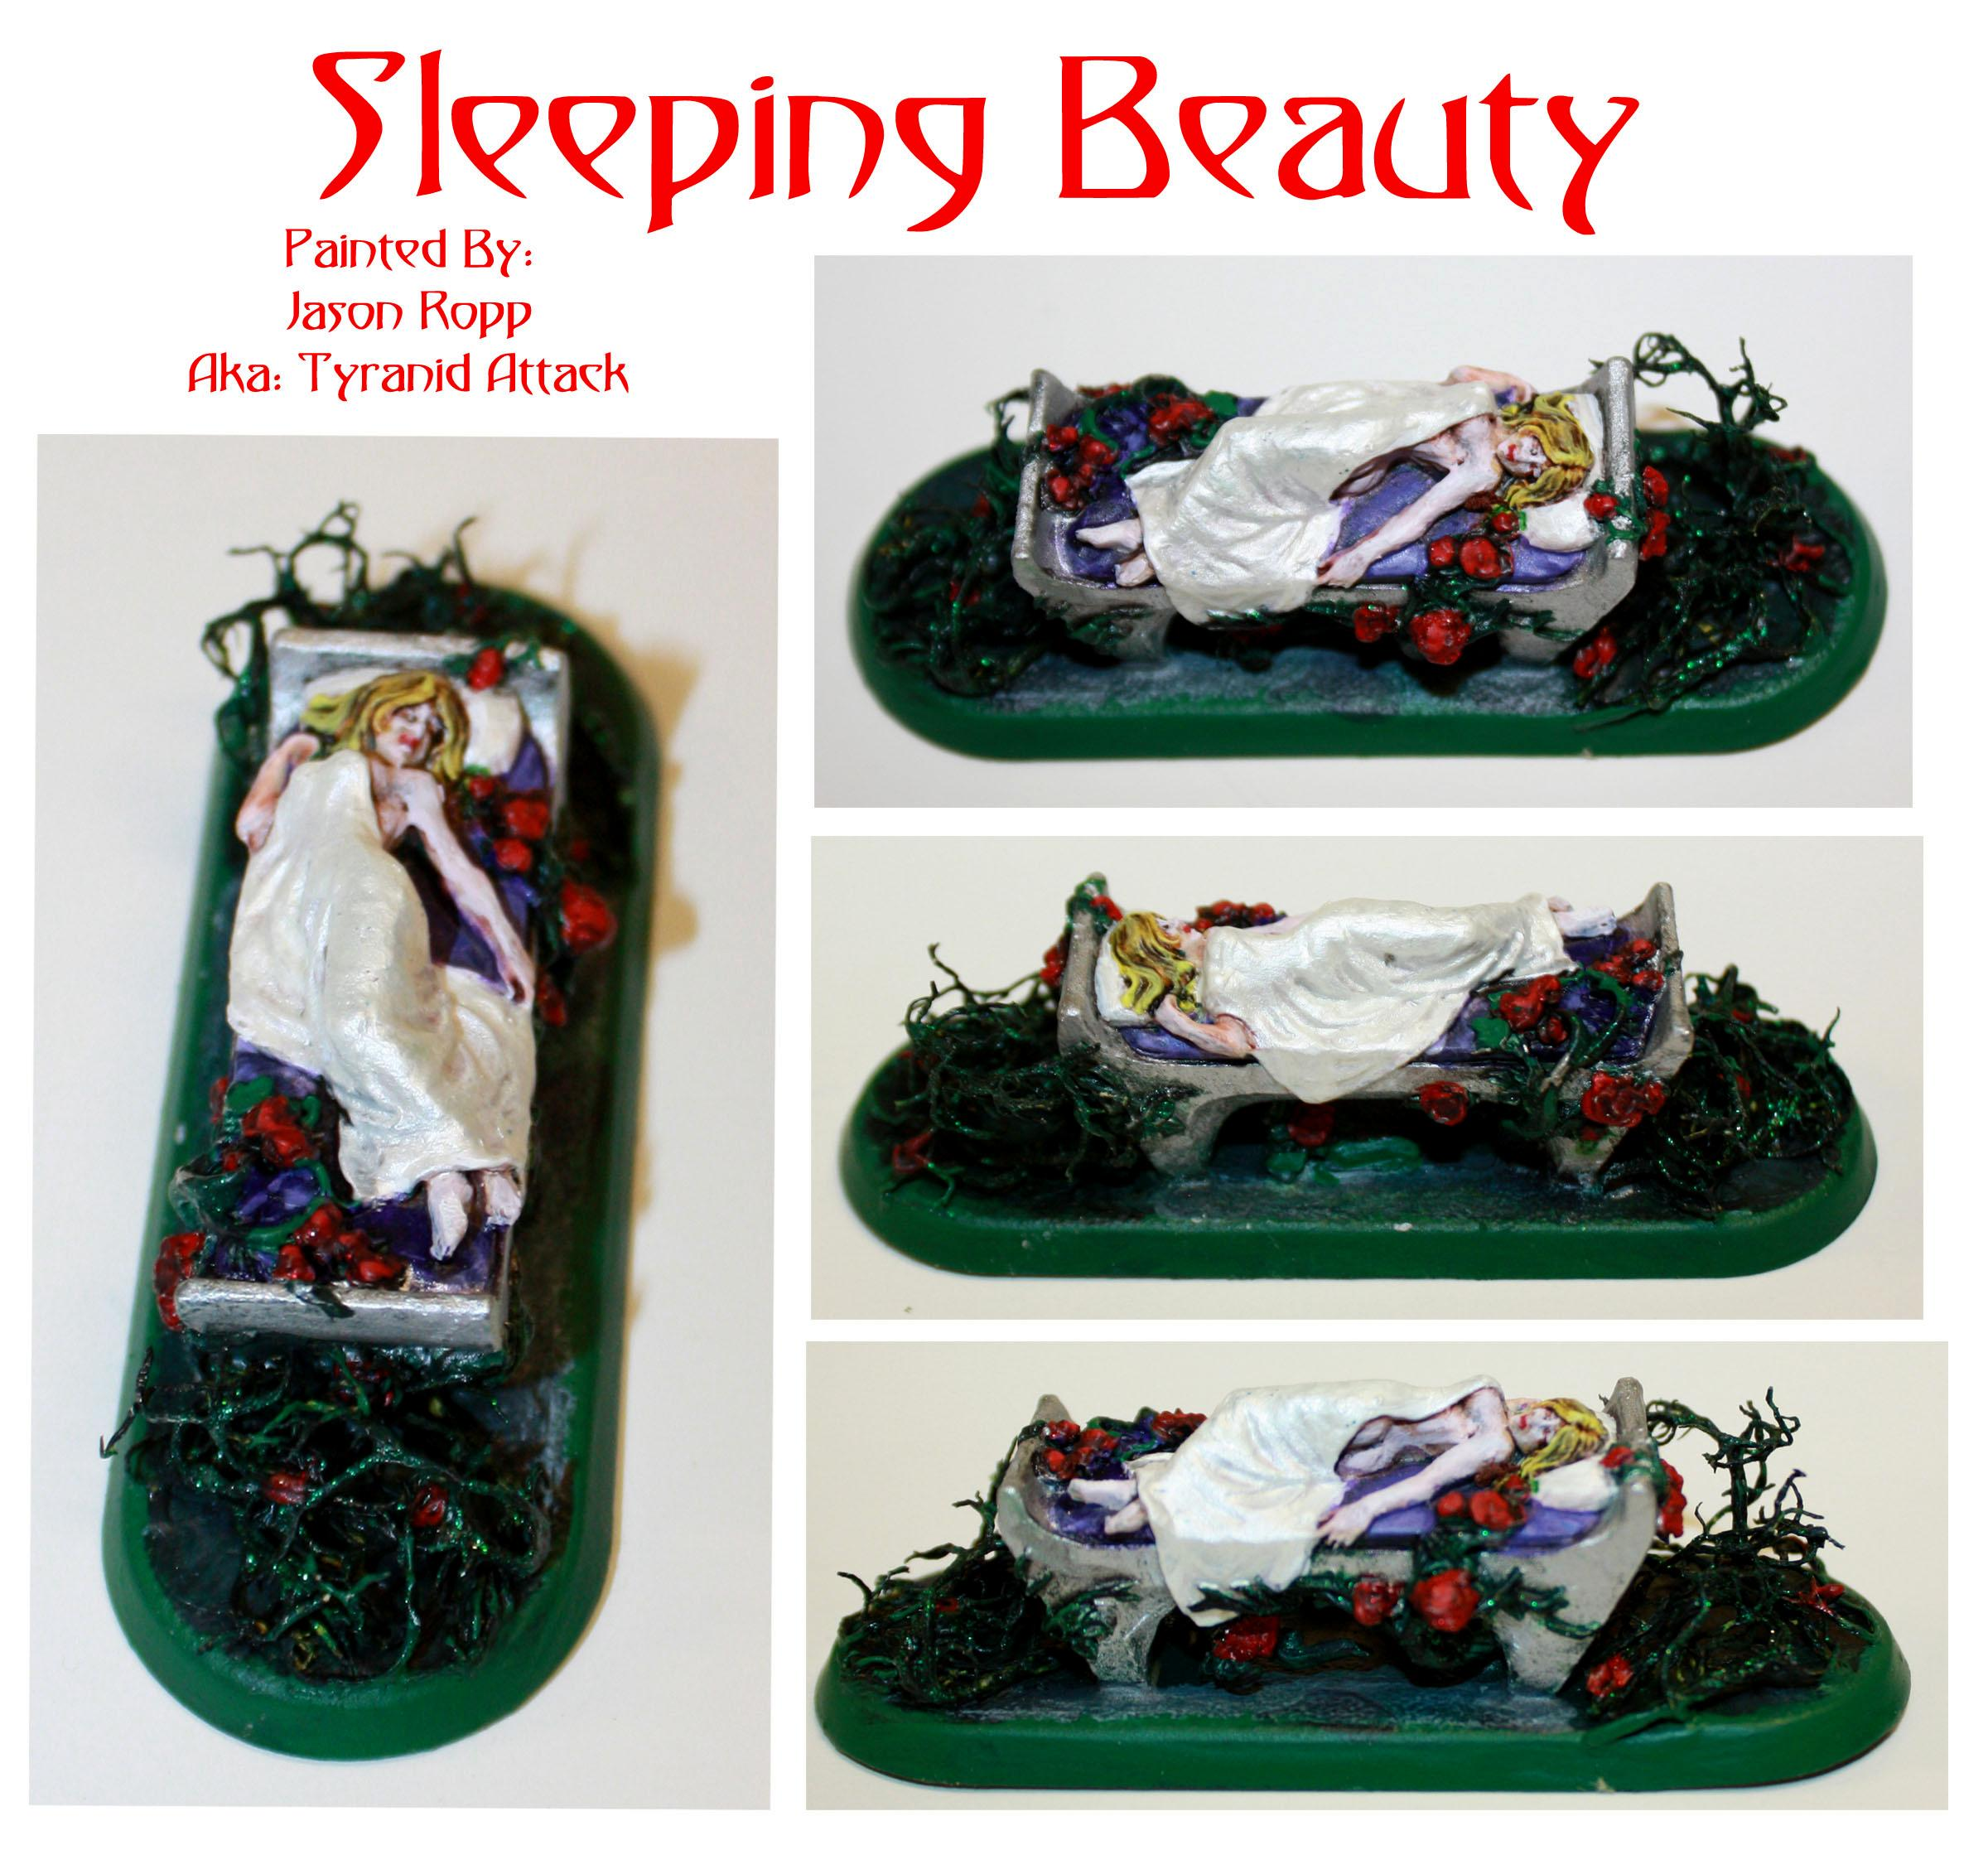 28mm, Boat, Death, Doom, Dragon, Dungeons And Dragons, Fairy, Fairy Tale, Grim Reaper, Grimm, Miniatures, Nude, Quest, Sleeping Beauty, Warhammer Fantasy